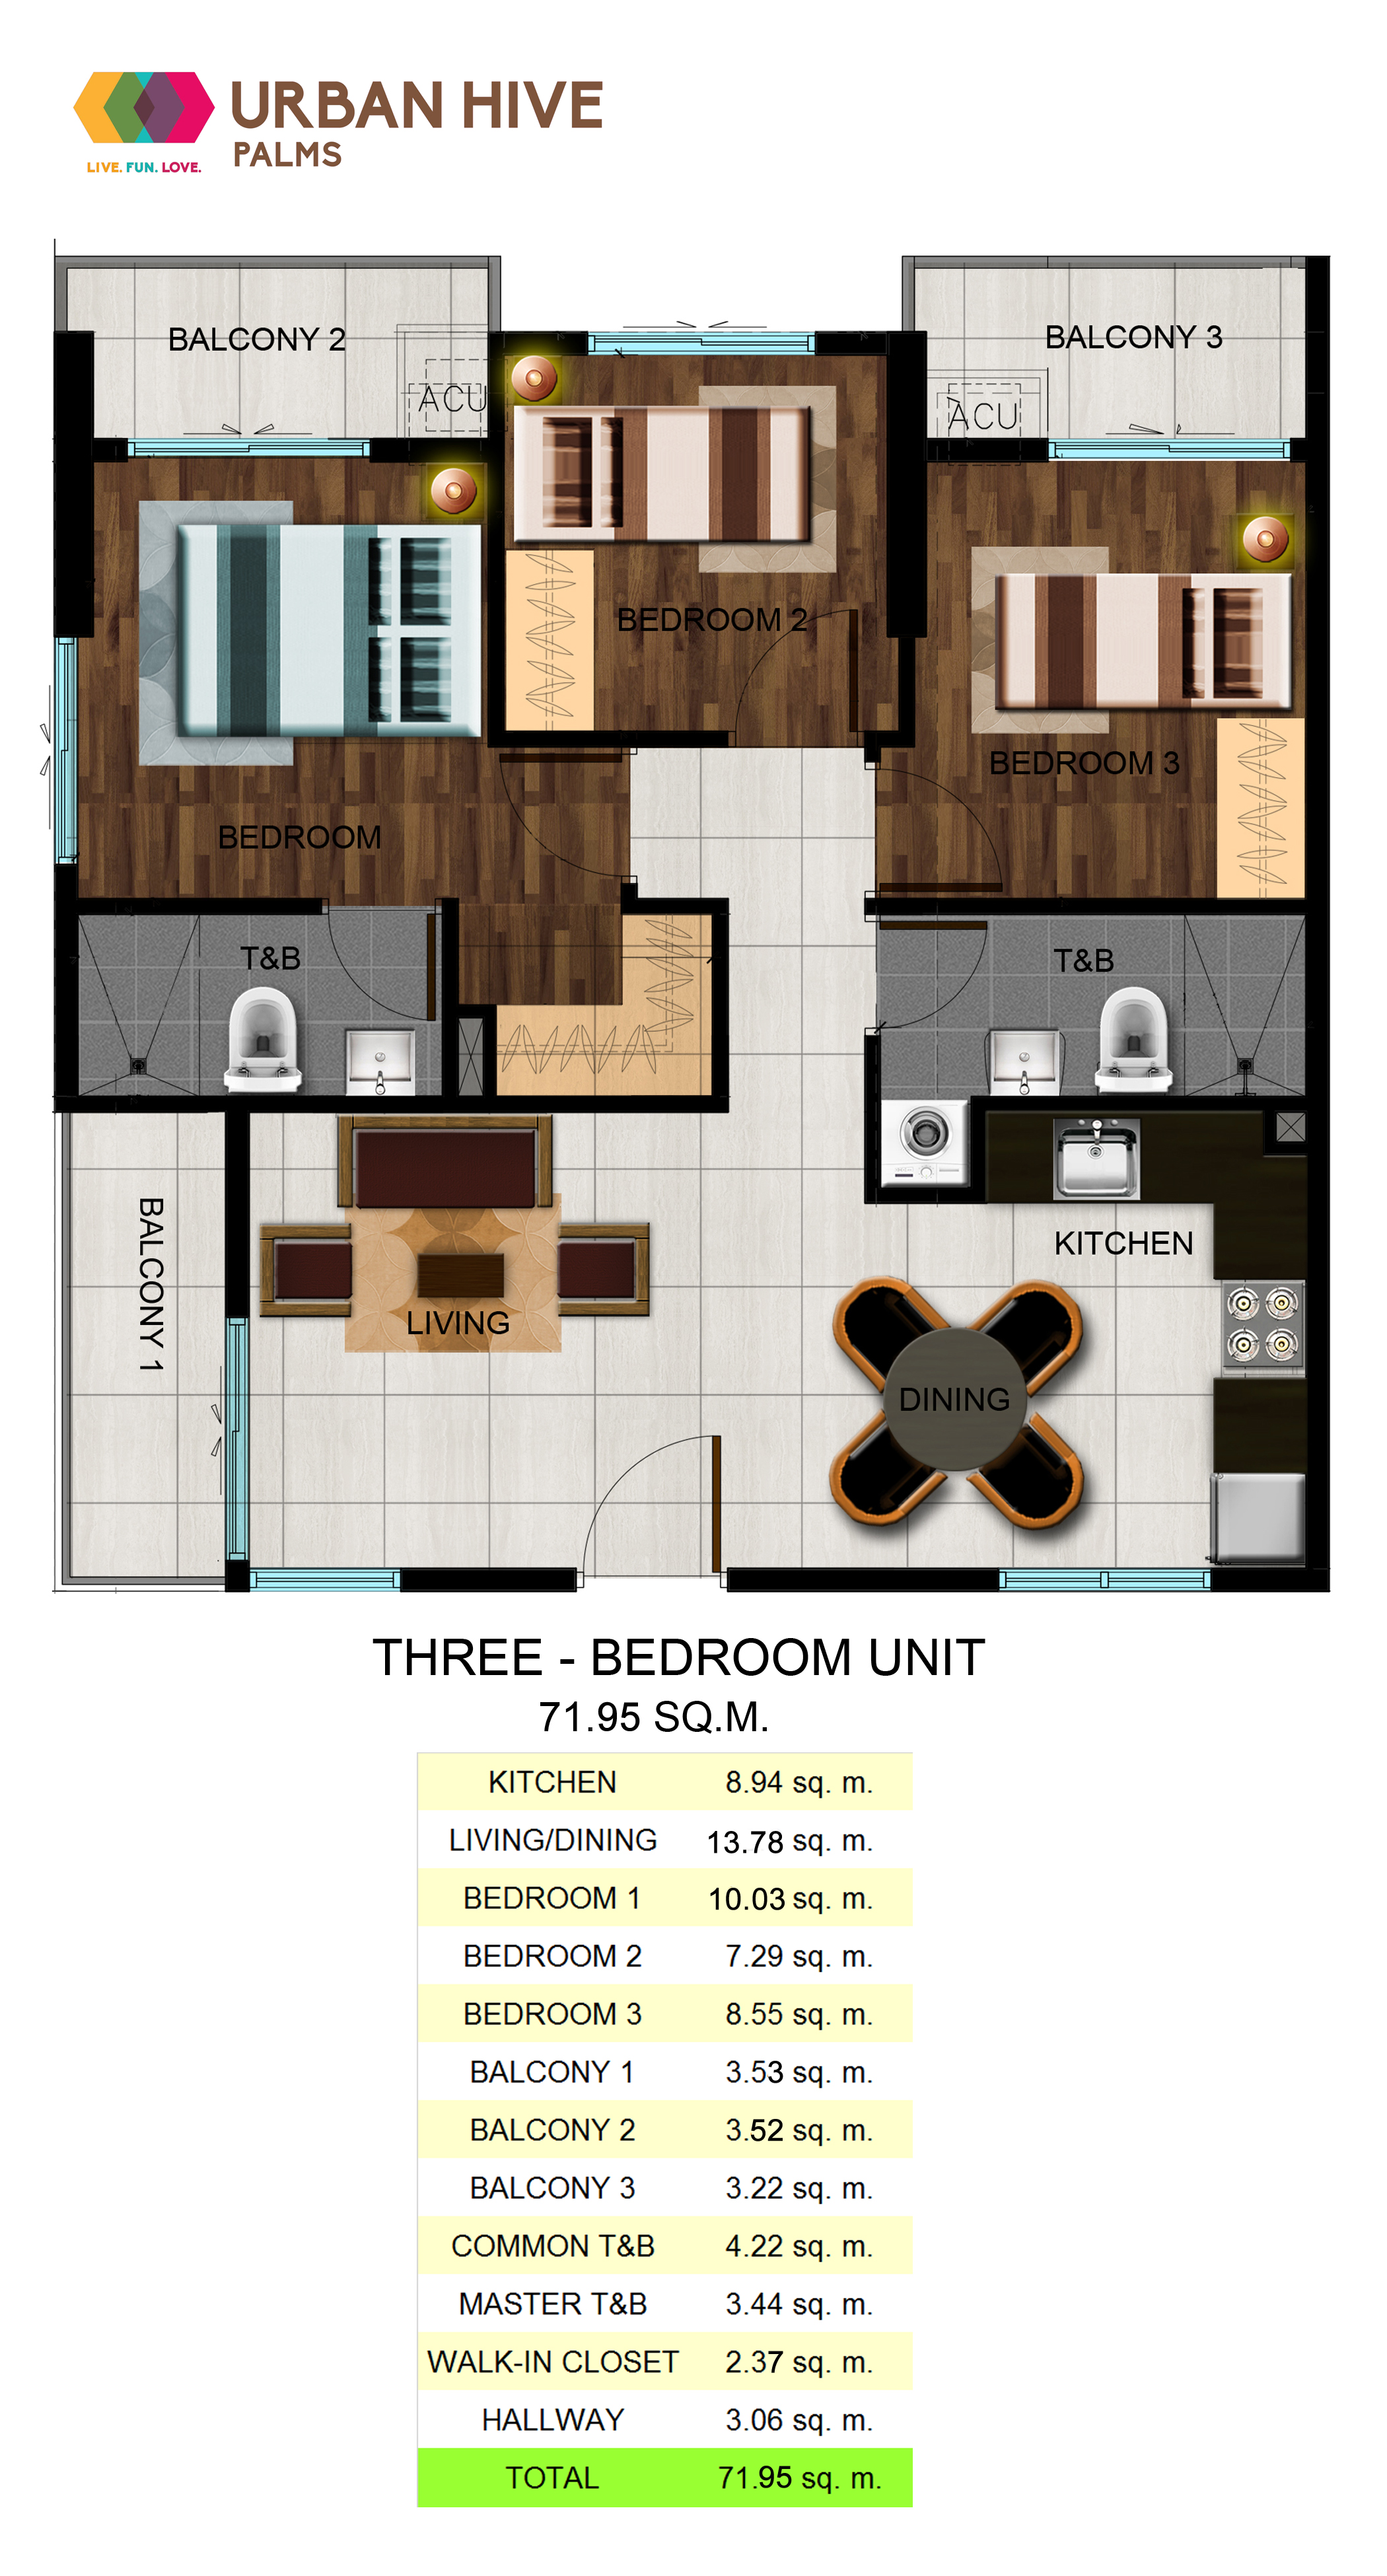 Urban Hive Palms Three Bedroom Unit - 71.95